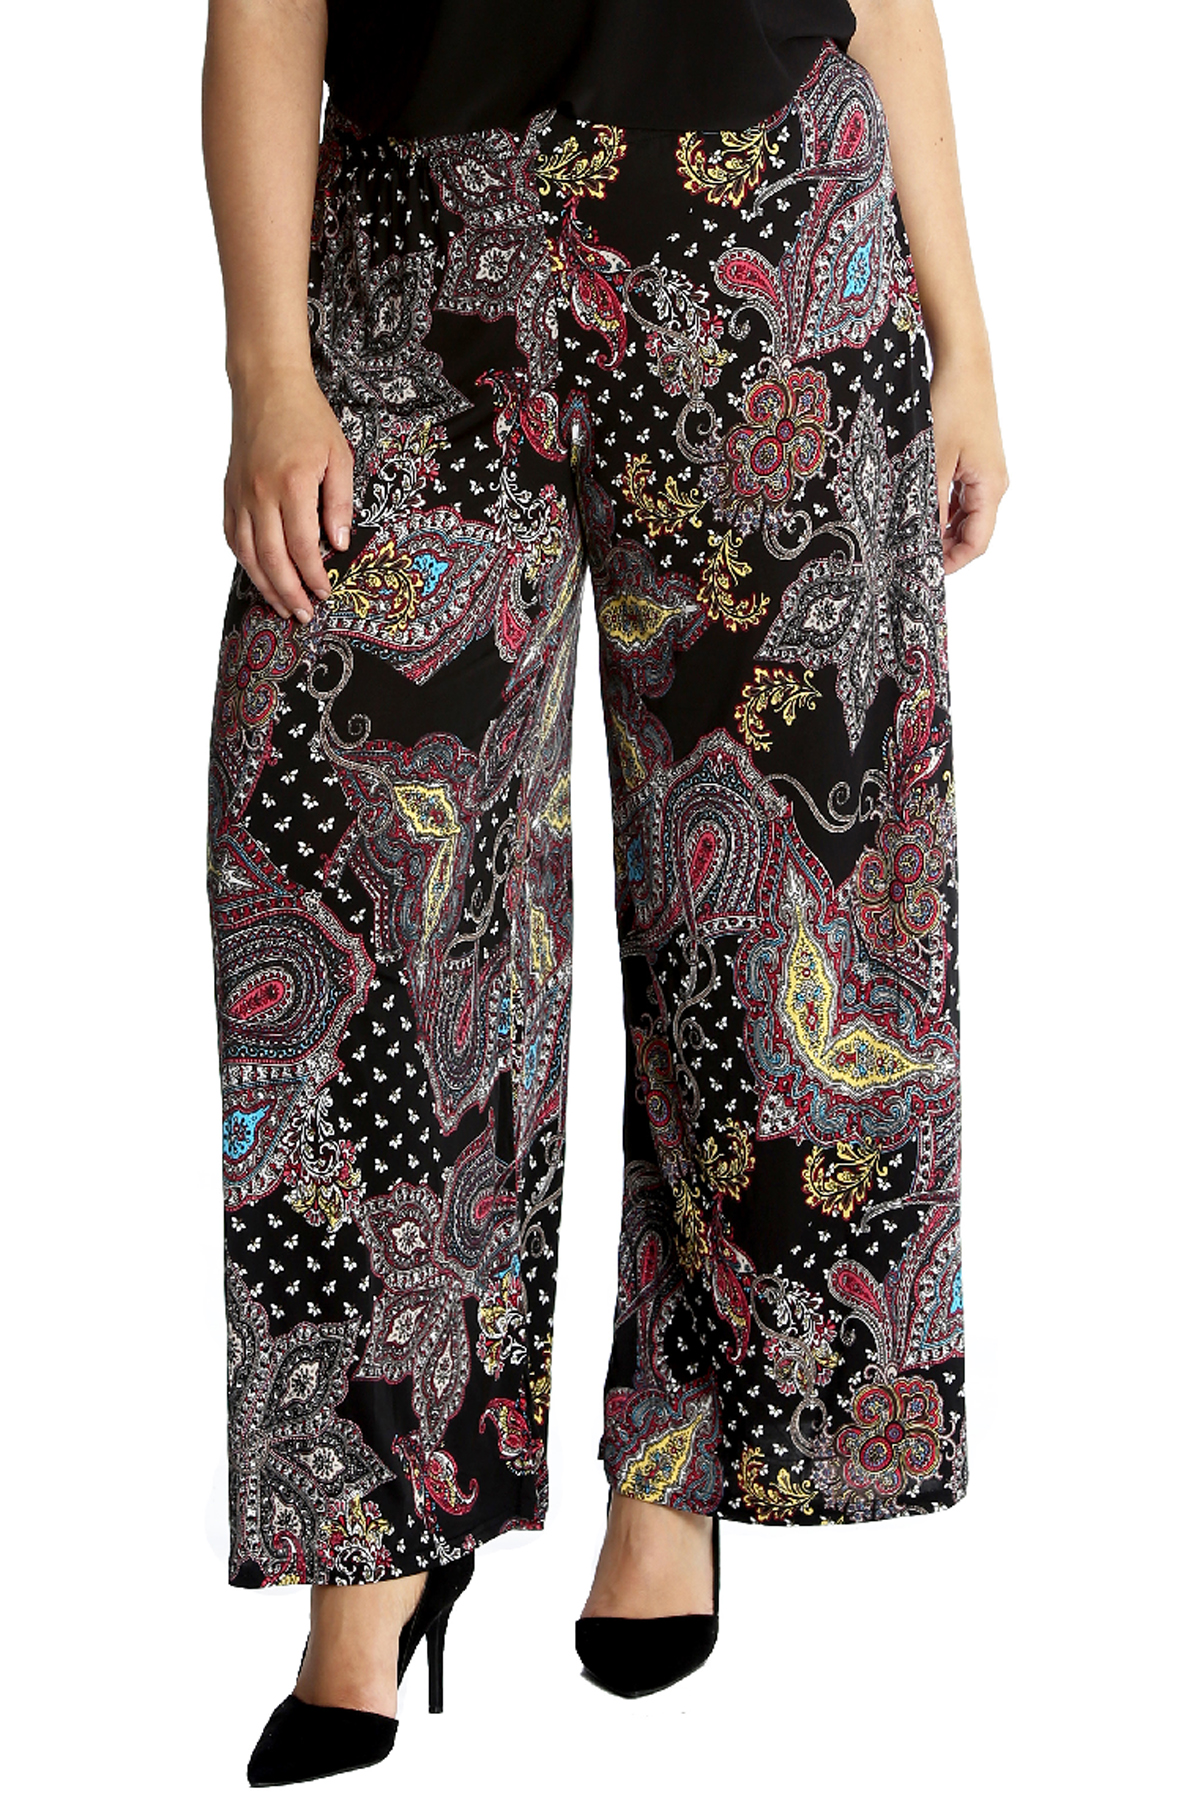 14981a5eb2a35 Details about New Womens Plus Size Trousers Ladies Paisley Print Palazzo  Pants Wide Leg Flared